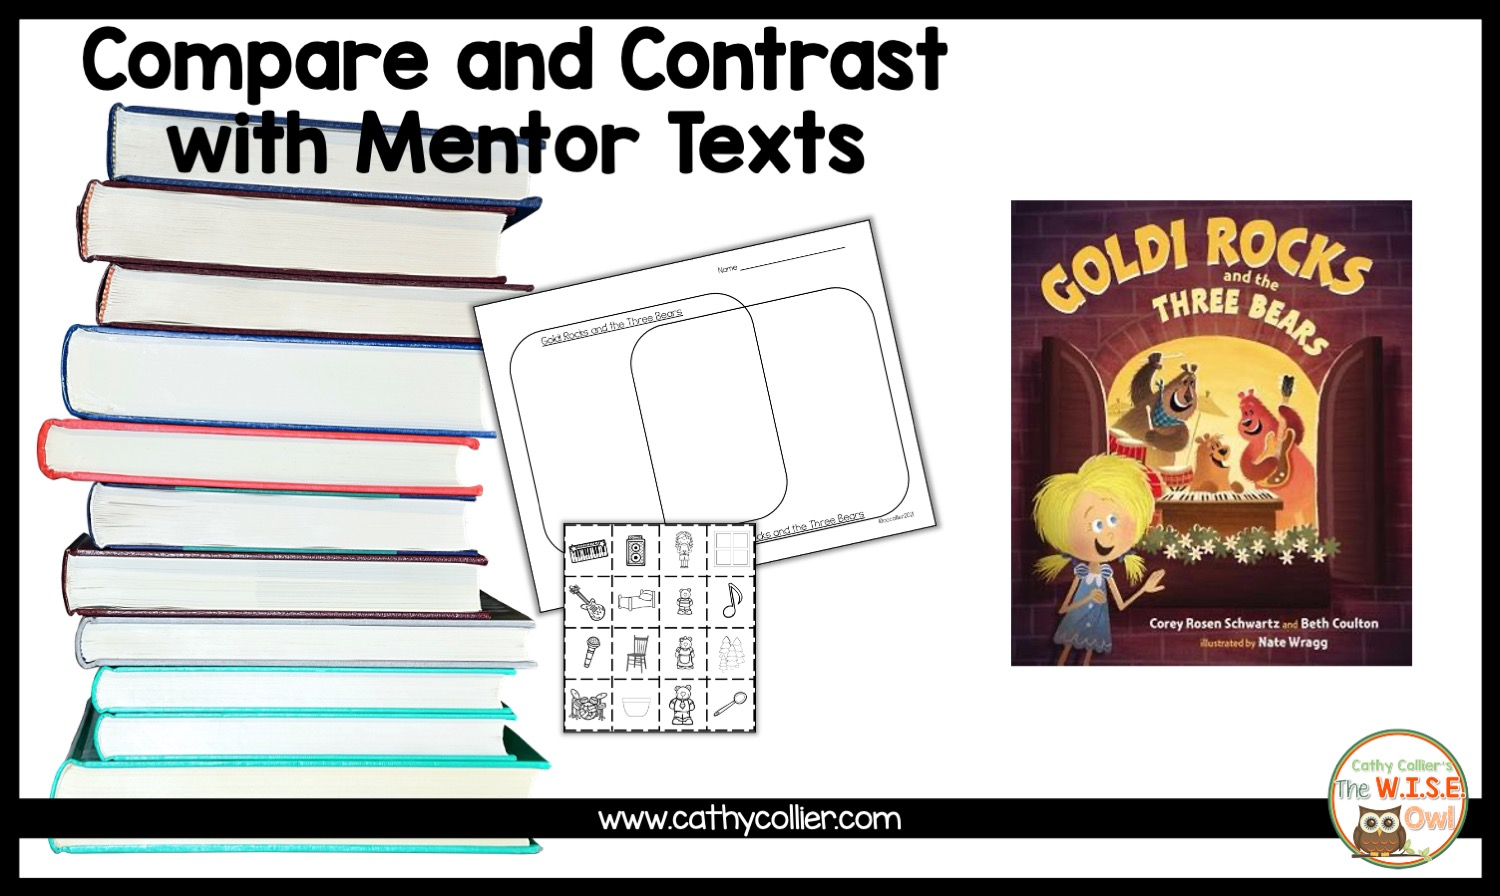 Goldi Rocks and the Three Bears is a great introduction to Compare and Contrast. What a fun twist on an old favorite.